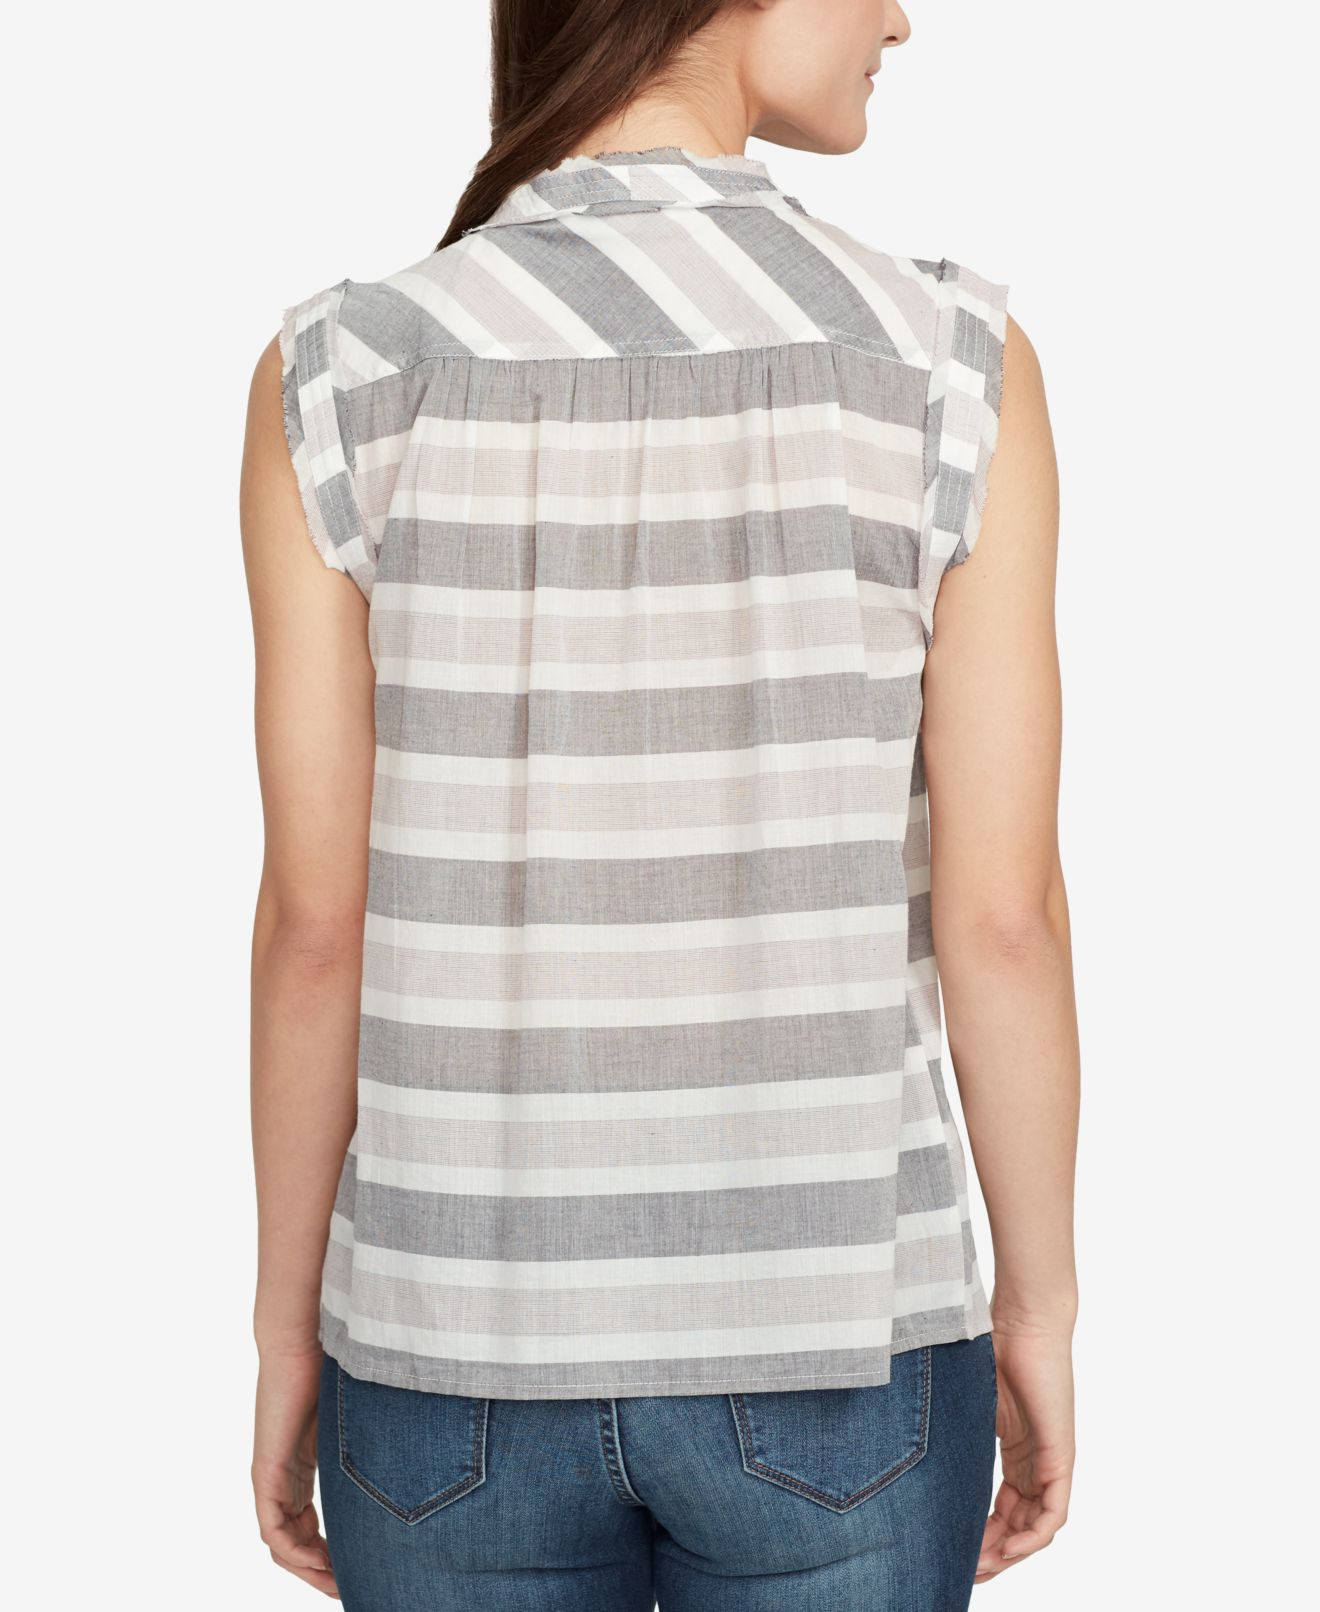 William-Rast-Pink-Gray-Women-039-s-Size-Medium-M-Striped-Lace-Up-Blouse thumbnail 2